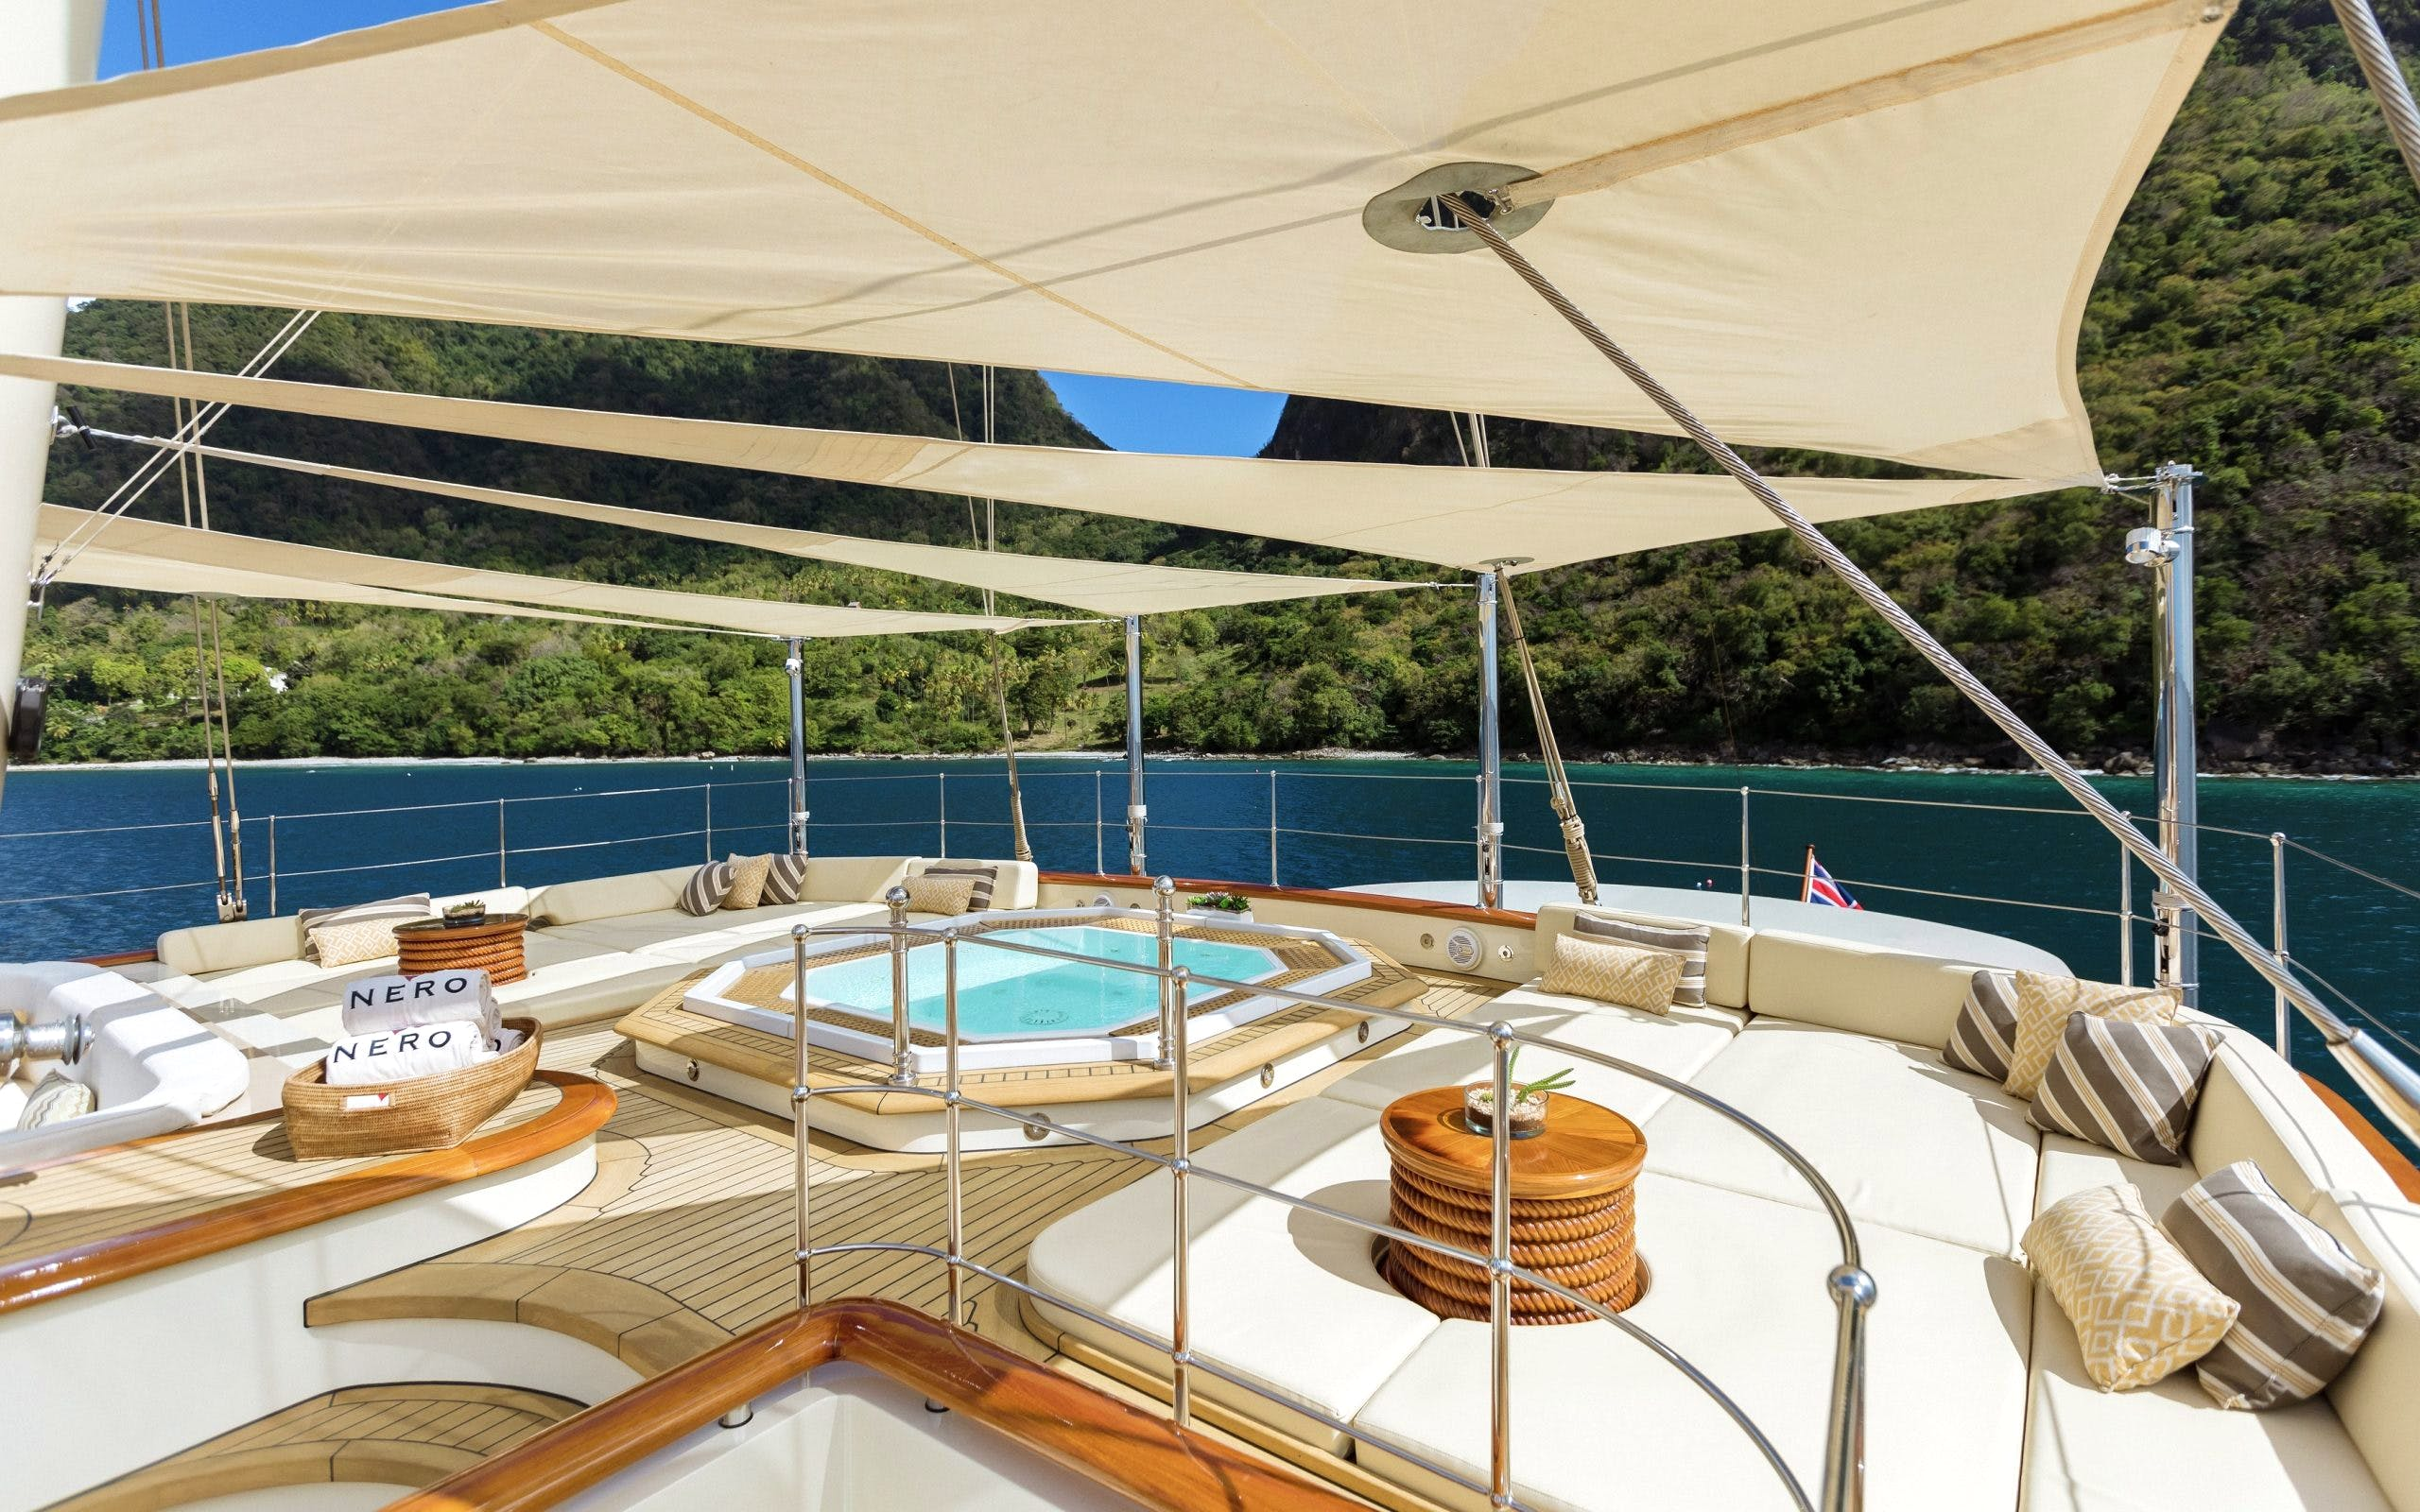 Seasonal Rates for NERO Private Luxury Yacht For Charter